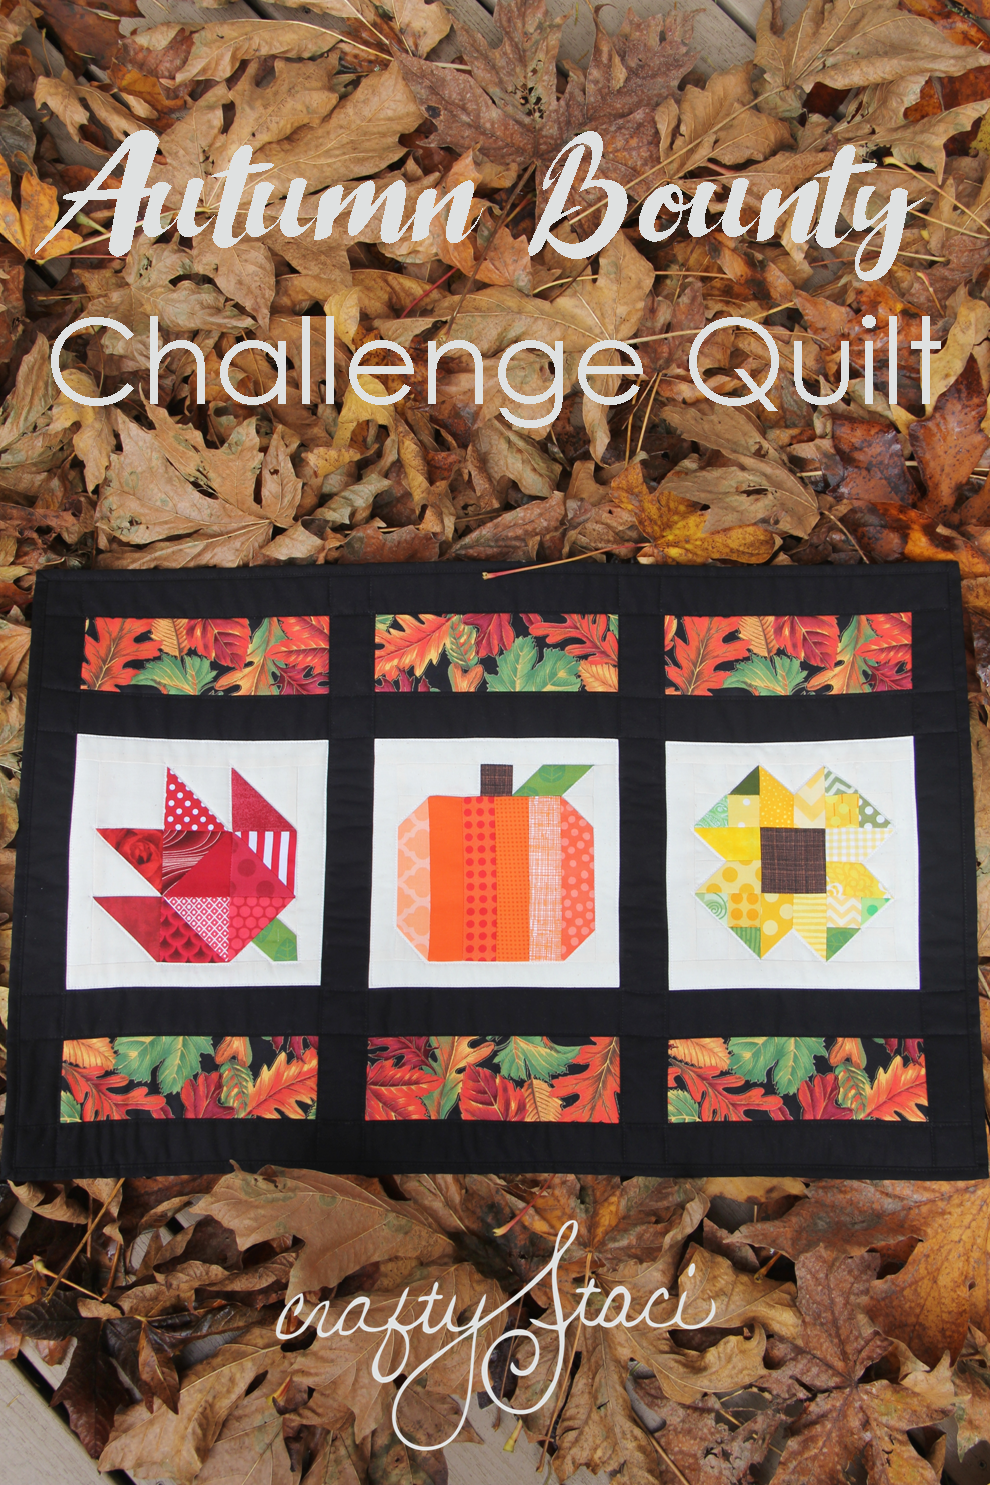 Autumn Bounty Challenge Quilt from Crafty Staci